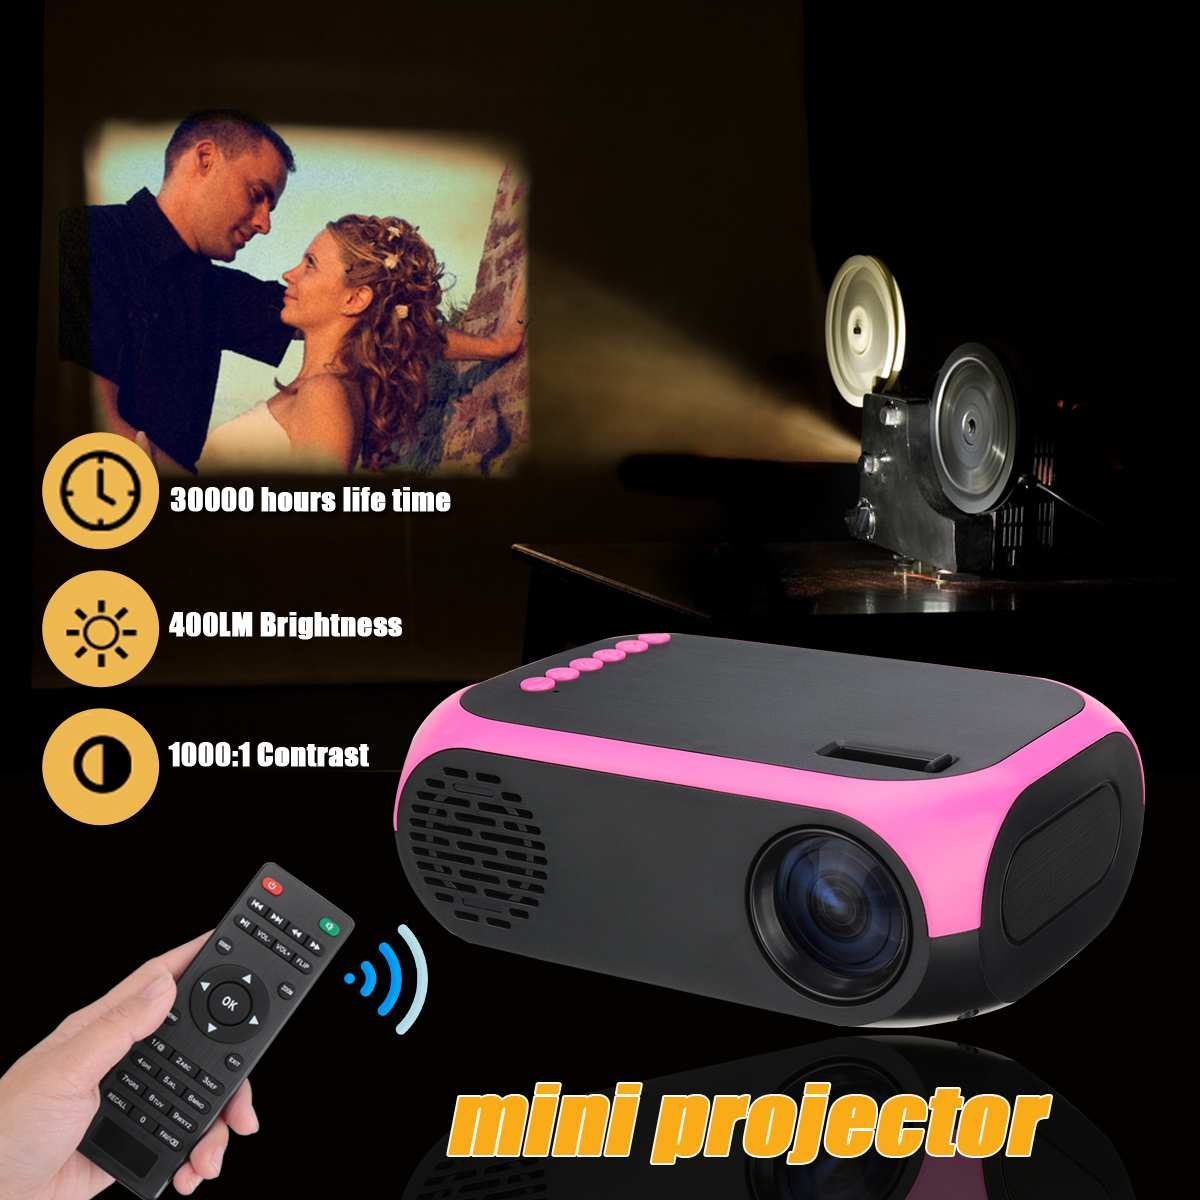 80 Inch Home Projector Large Screen 1920* 1080P 400LM USB Power Supply 30000 Hours Life LCD Projector Home Theater Video Player